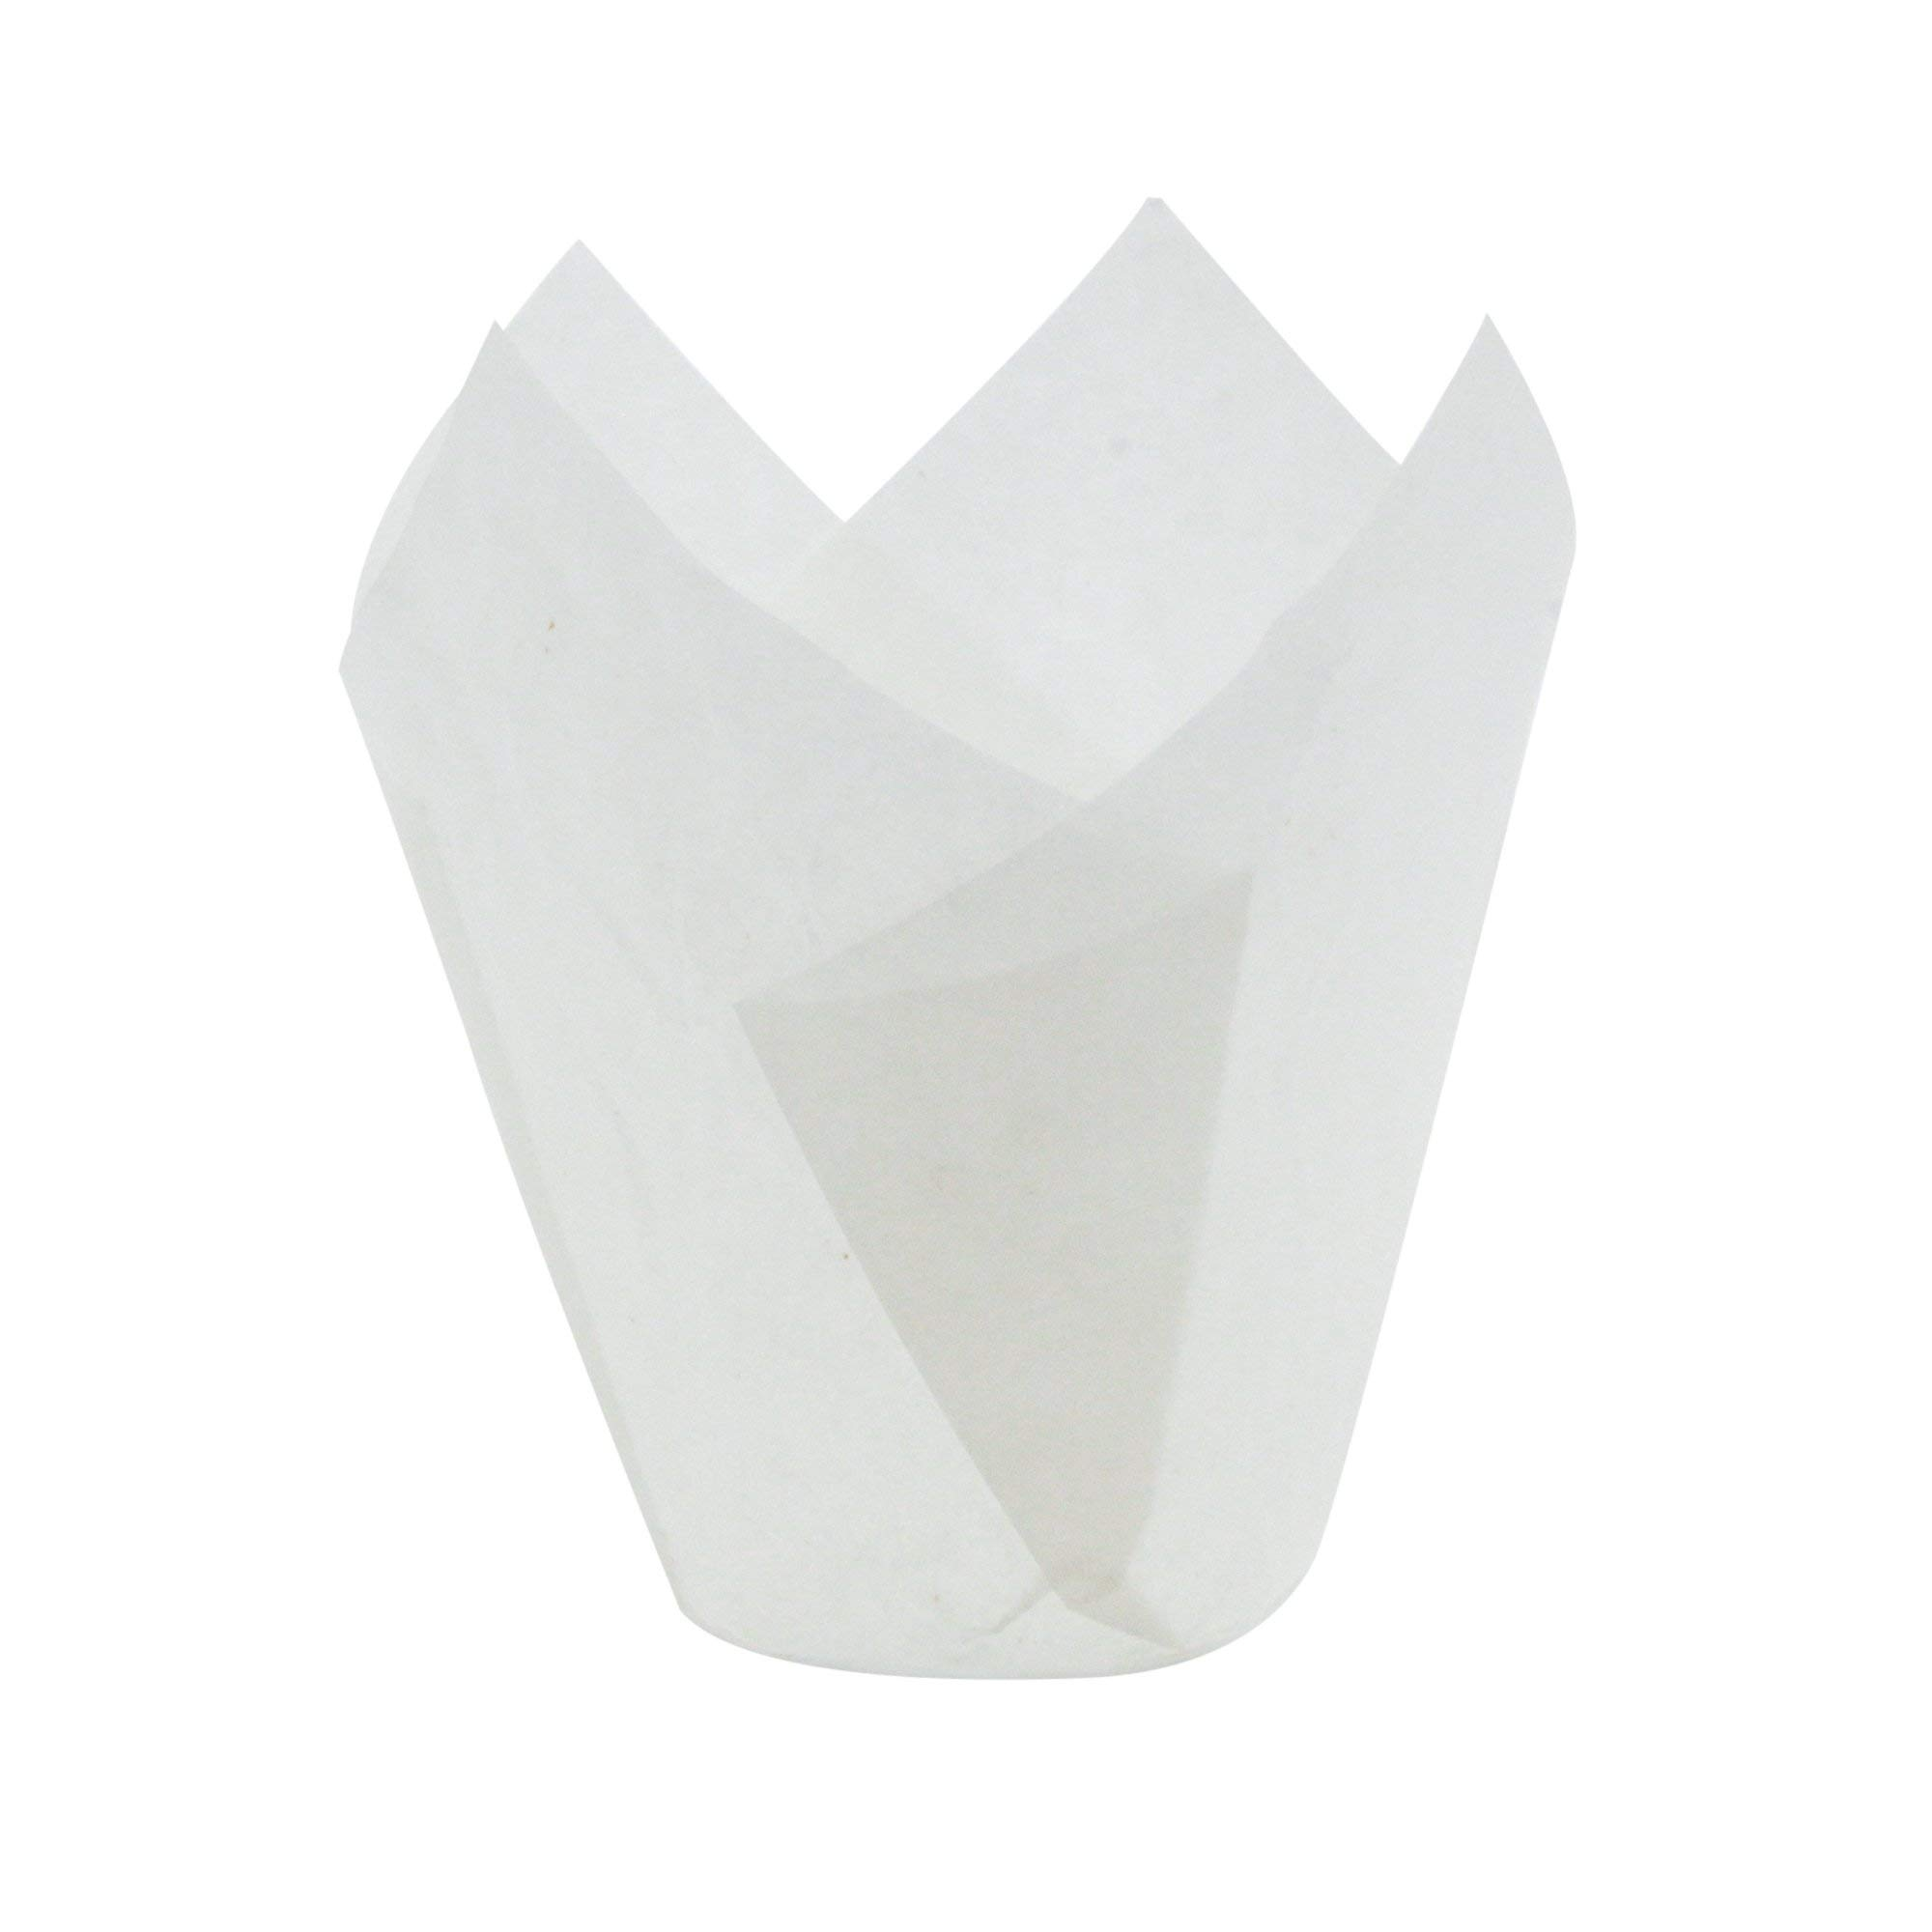 White Tulip Baking Cups, Mini Size, Pack of 250 by Ecobake (Image #2)